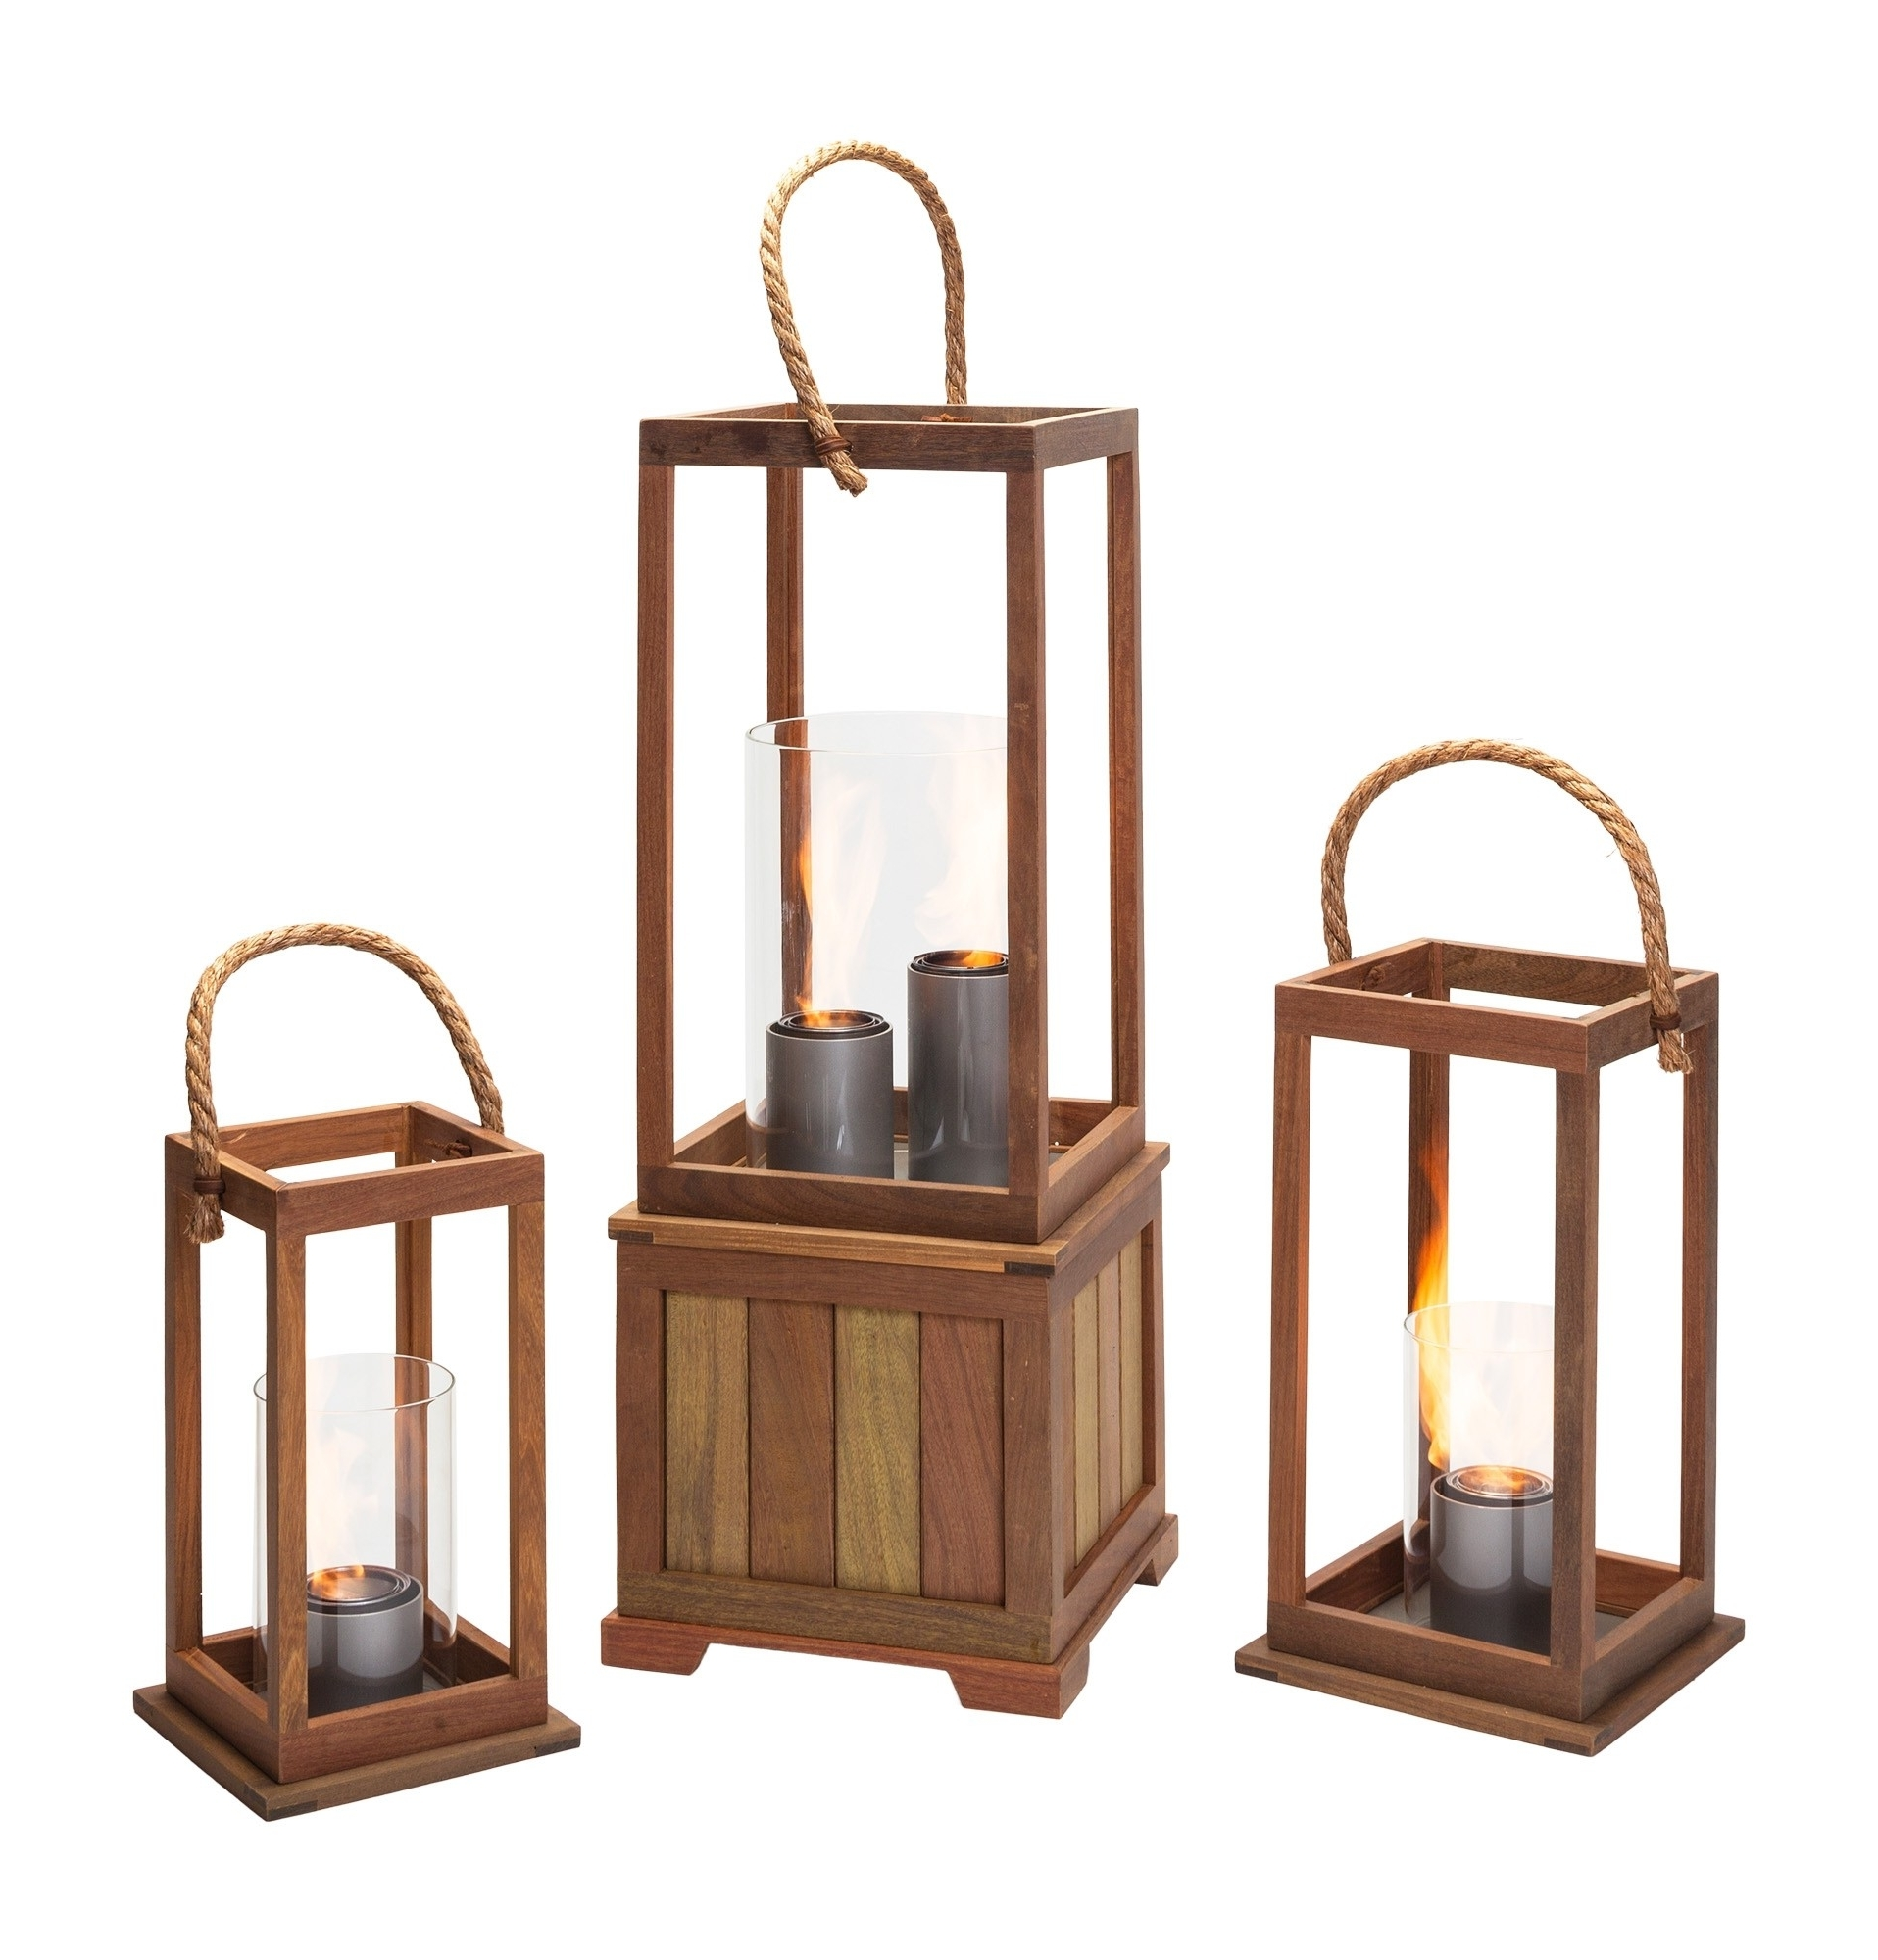 Xl Outdoor Lanterns For Recent Sonoma 17 Inch Outdoor Lantern In Ipe Woodnorthcape Fire (Gallery 17 of 20)